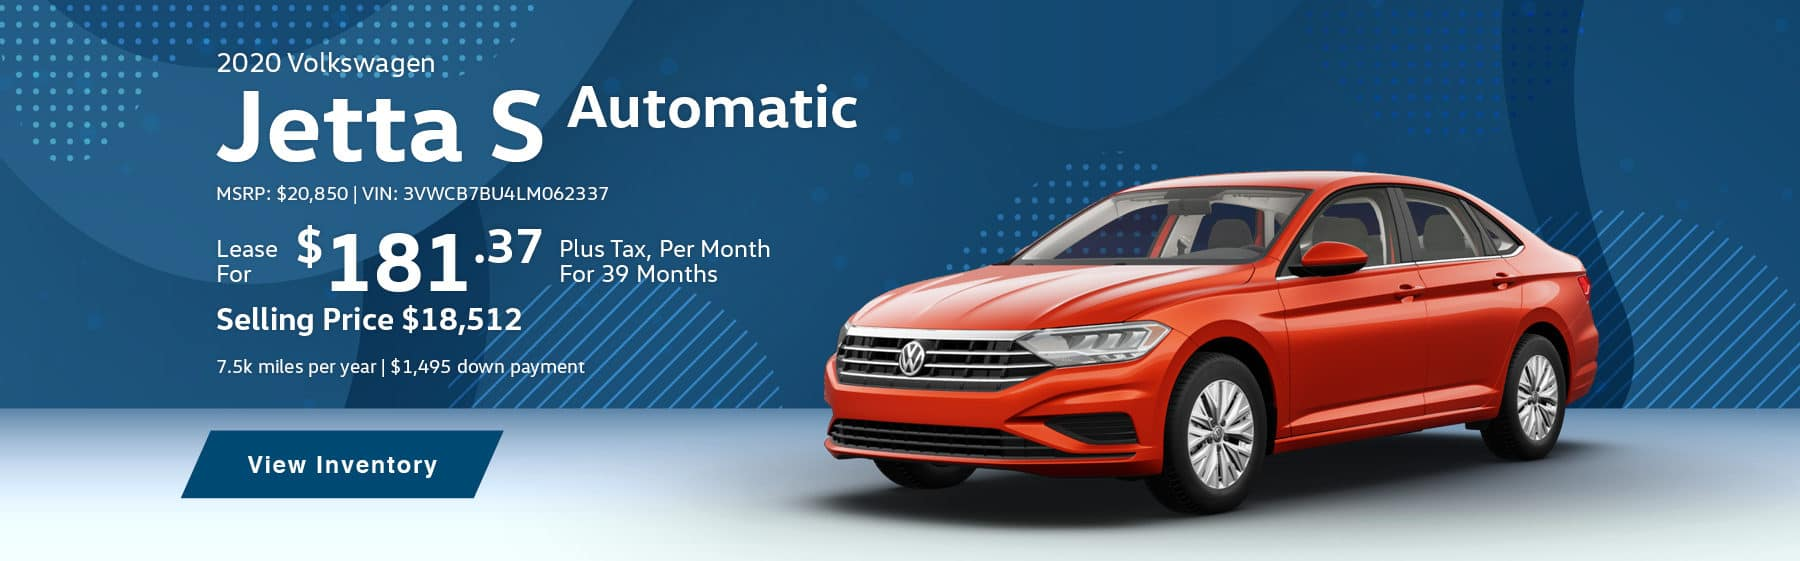 Lease the 2020 Jetta S Automatic for $181.37 per month, plus tax for 39 months.